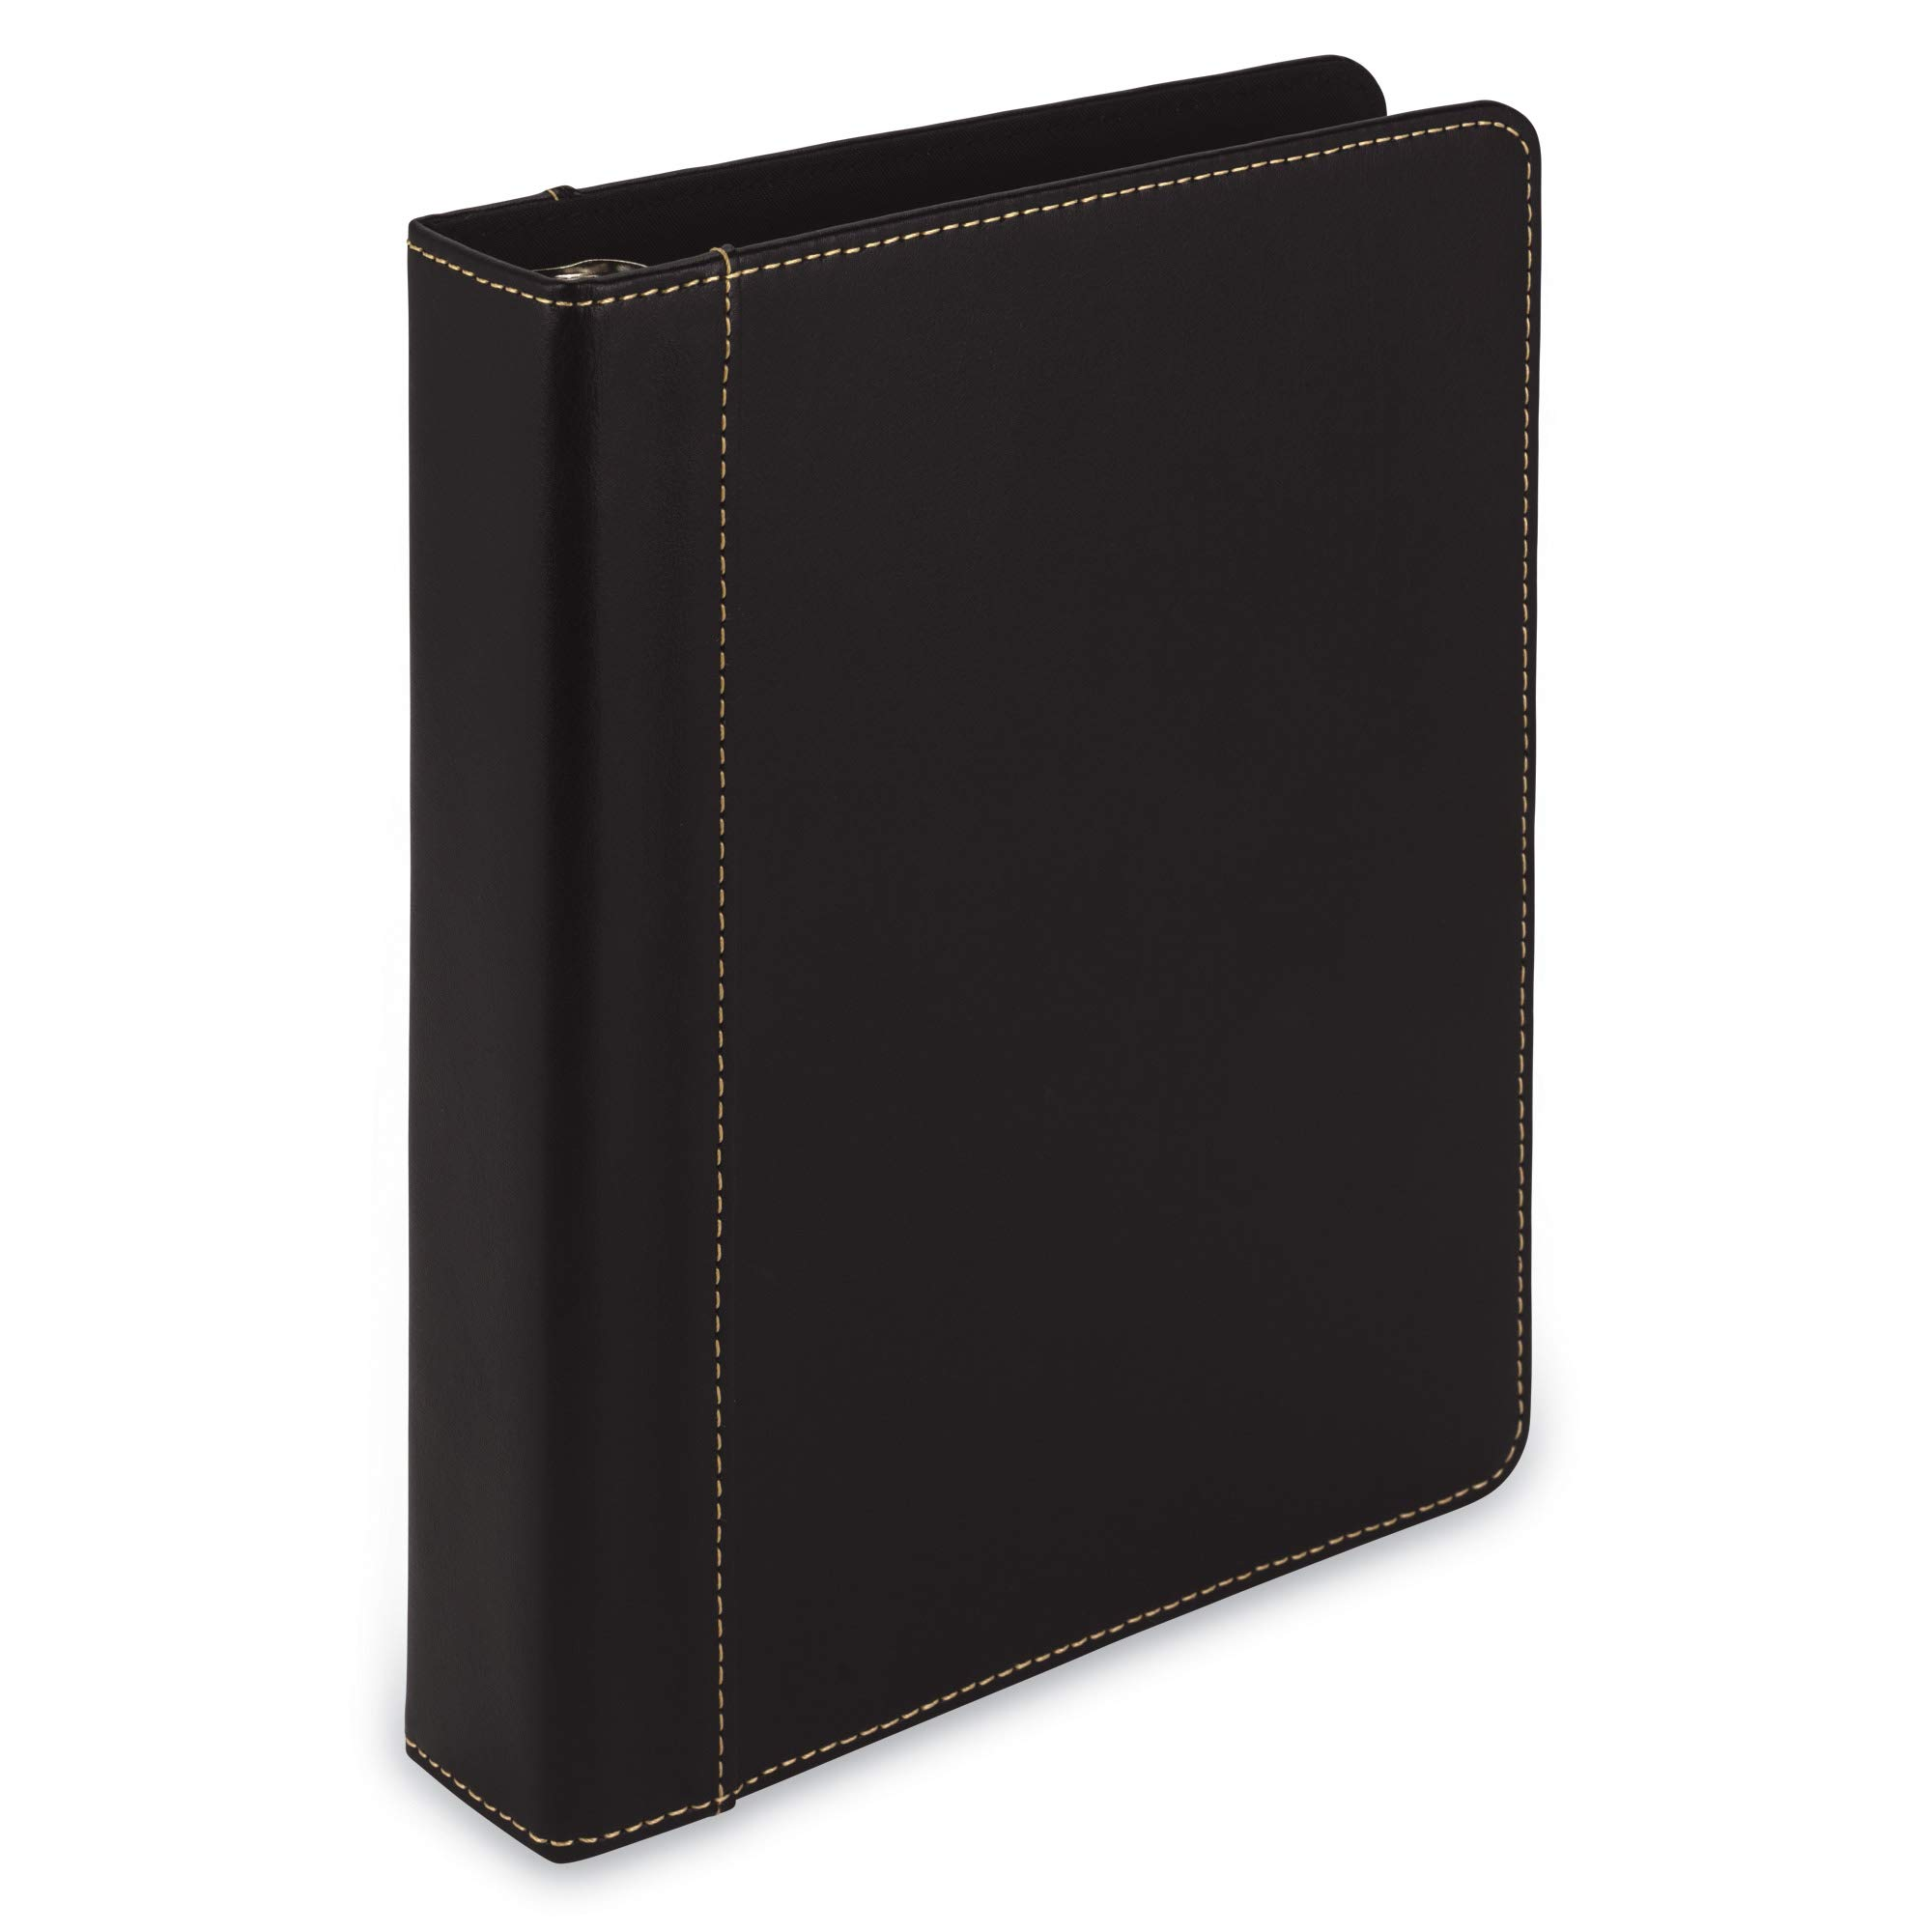 Samsill 1 Inch Mini 3 Ring Binder/Junior Planner Binder - Size 7.5'' x 9.1'' / Fits 8.5'' x 5.5'' Paper and Sheet Protectors/Hardback Notebook and Organizer Binder/Black by Samsill